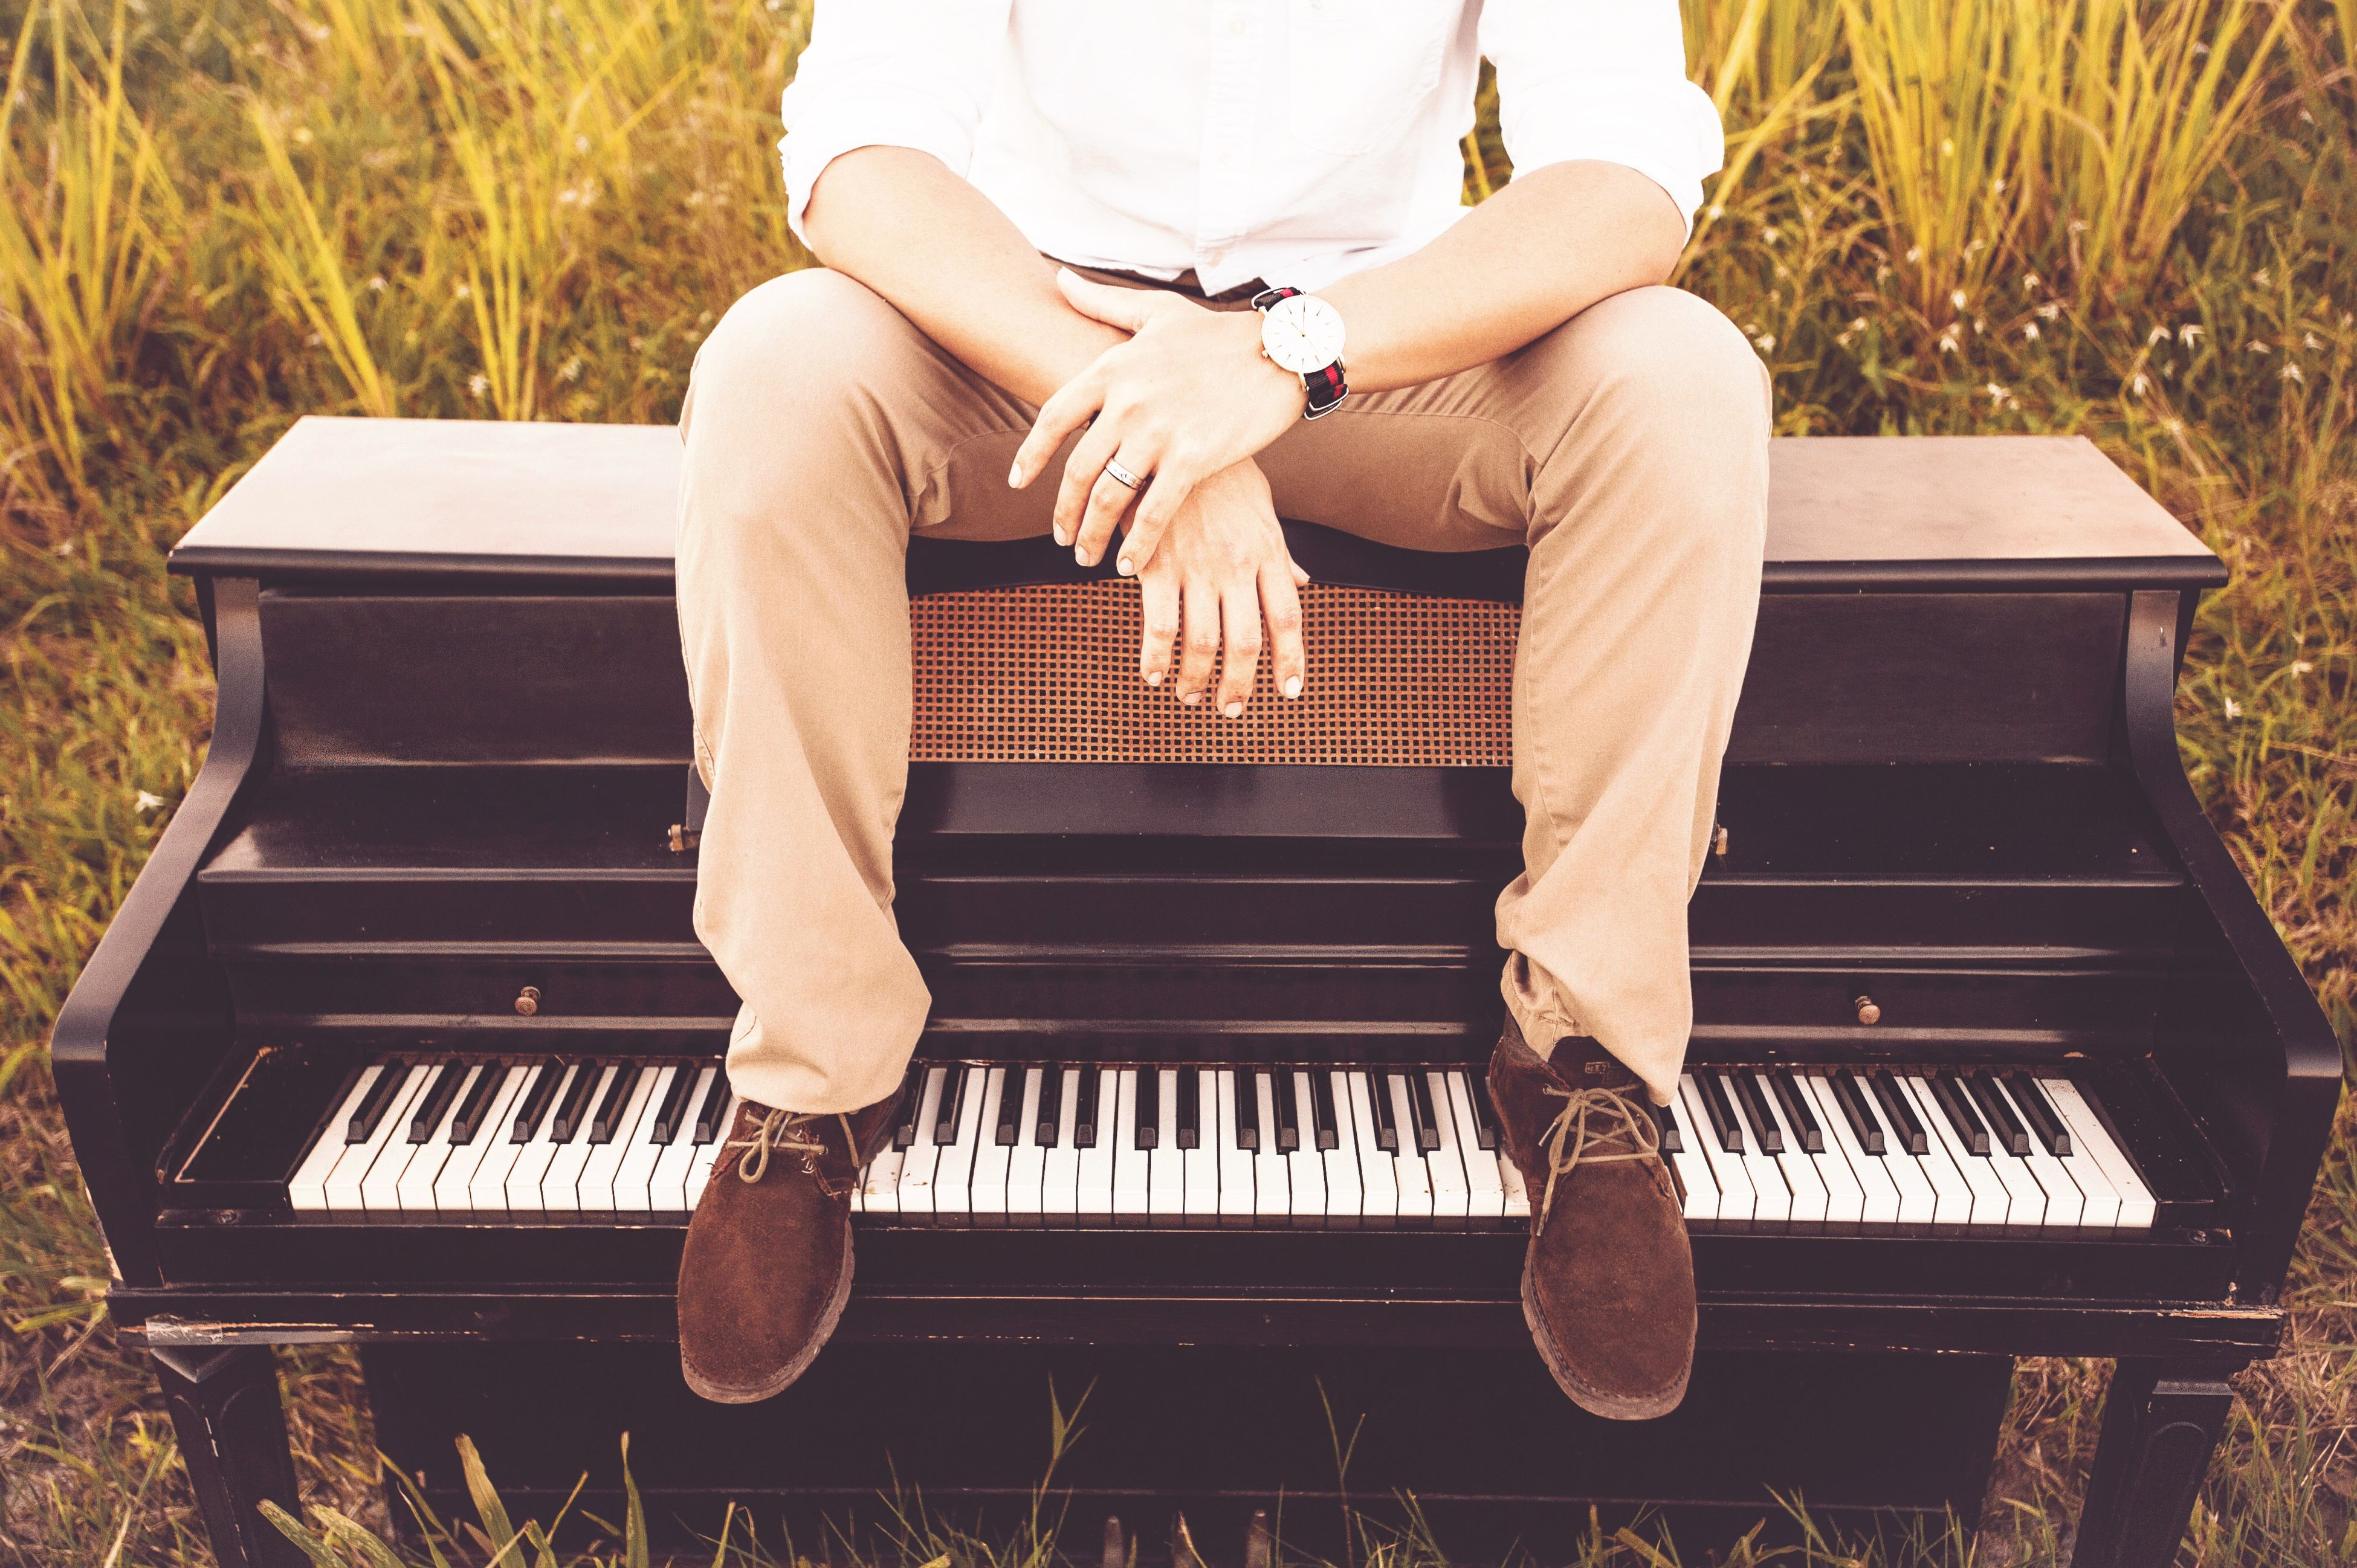 sitting, music, musical instrument, one person, piano, adults only, chair, musician, human hand, one man only, adult, human body part, people, day